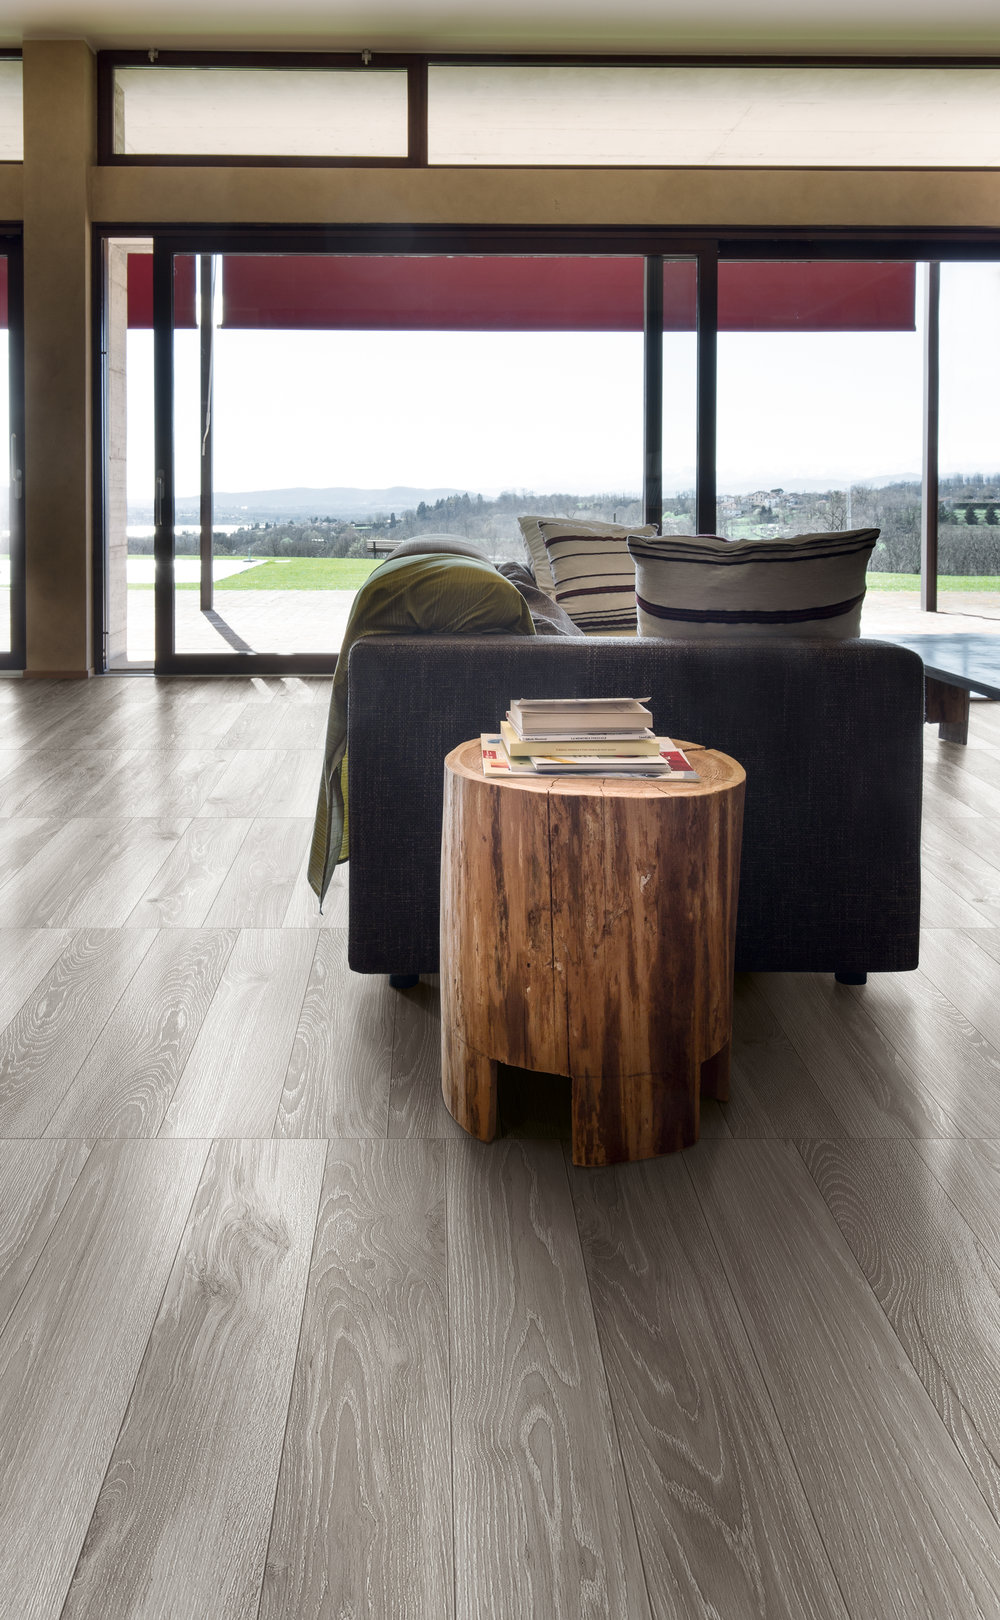 What Are The Differences Between Porcelain Tile and Ceramic? - Porcelain and ceramic tile are apart of the same family of tile, but there are key differences between the two. The biggest difference between the two is the porosity. Porcelain tile is non-porous and therefore has a low water absorption rate, compared to ceramic. Because of it's extremely low porosity levels, porcelain tile is also very dense and durable compared to ceramic. Additionally, porcelain tile is rated for indoor/outdoor, floor/wall, residential/commercial and wet/dry installation, whereas ceramic may not be.